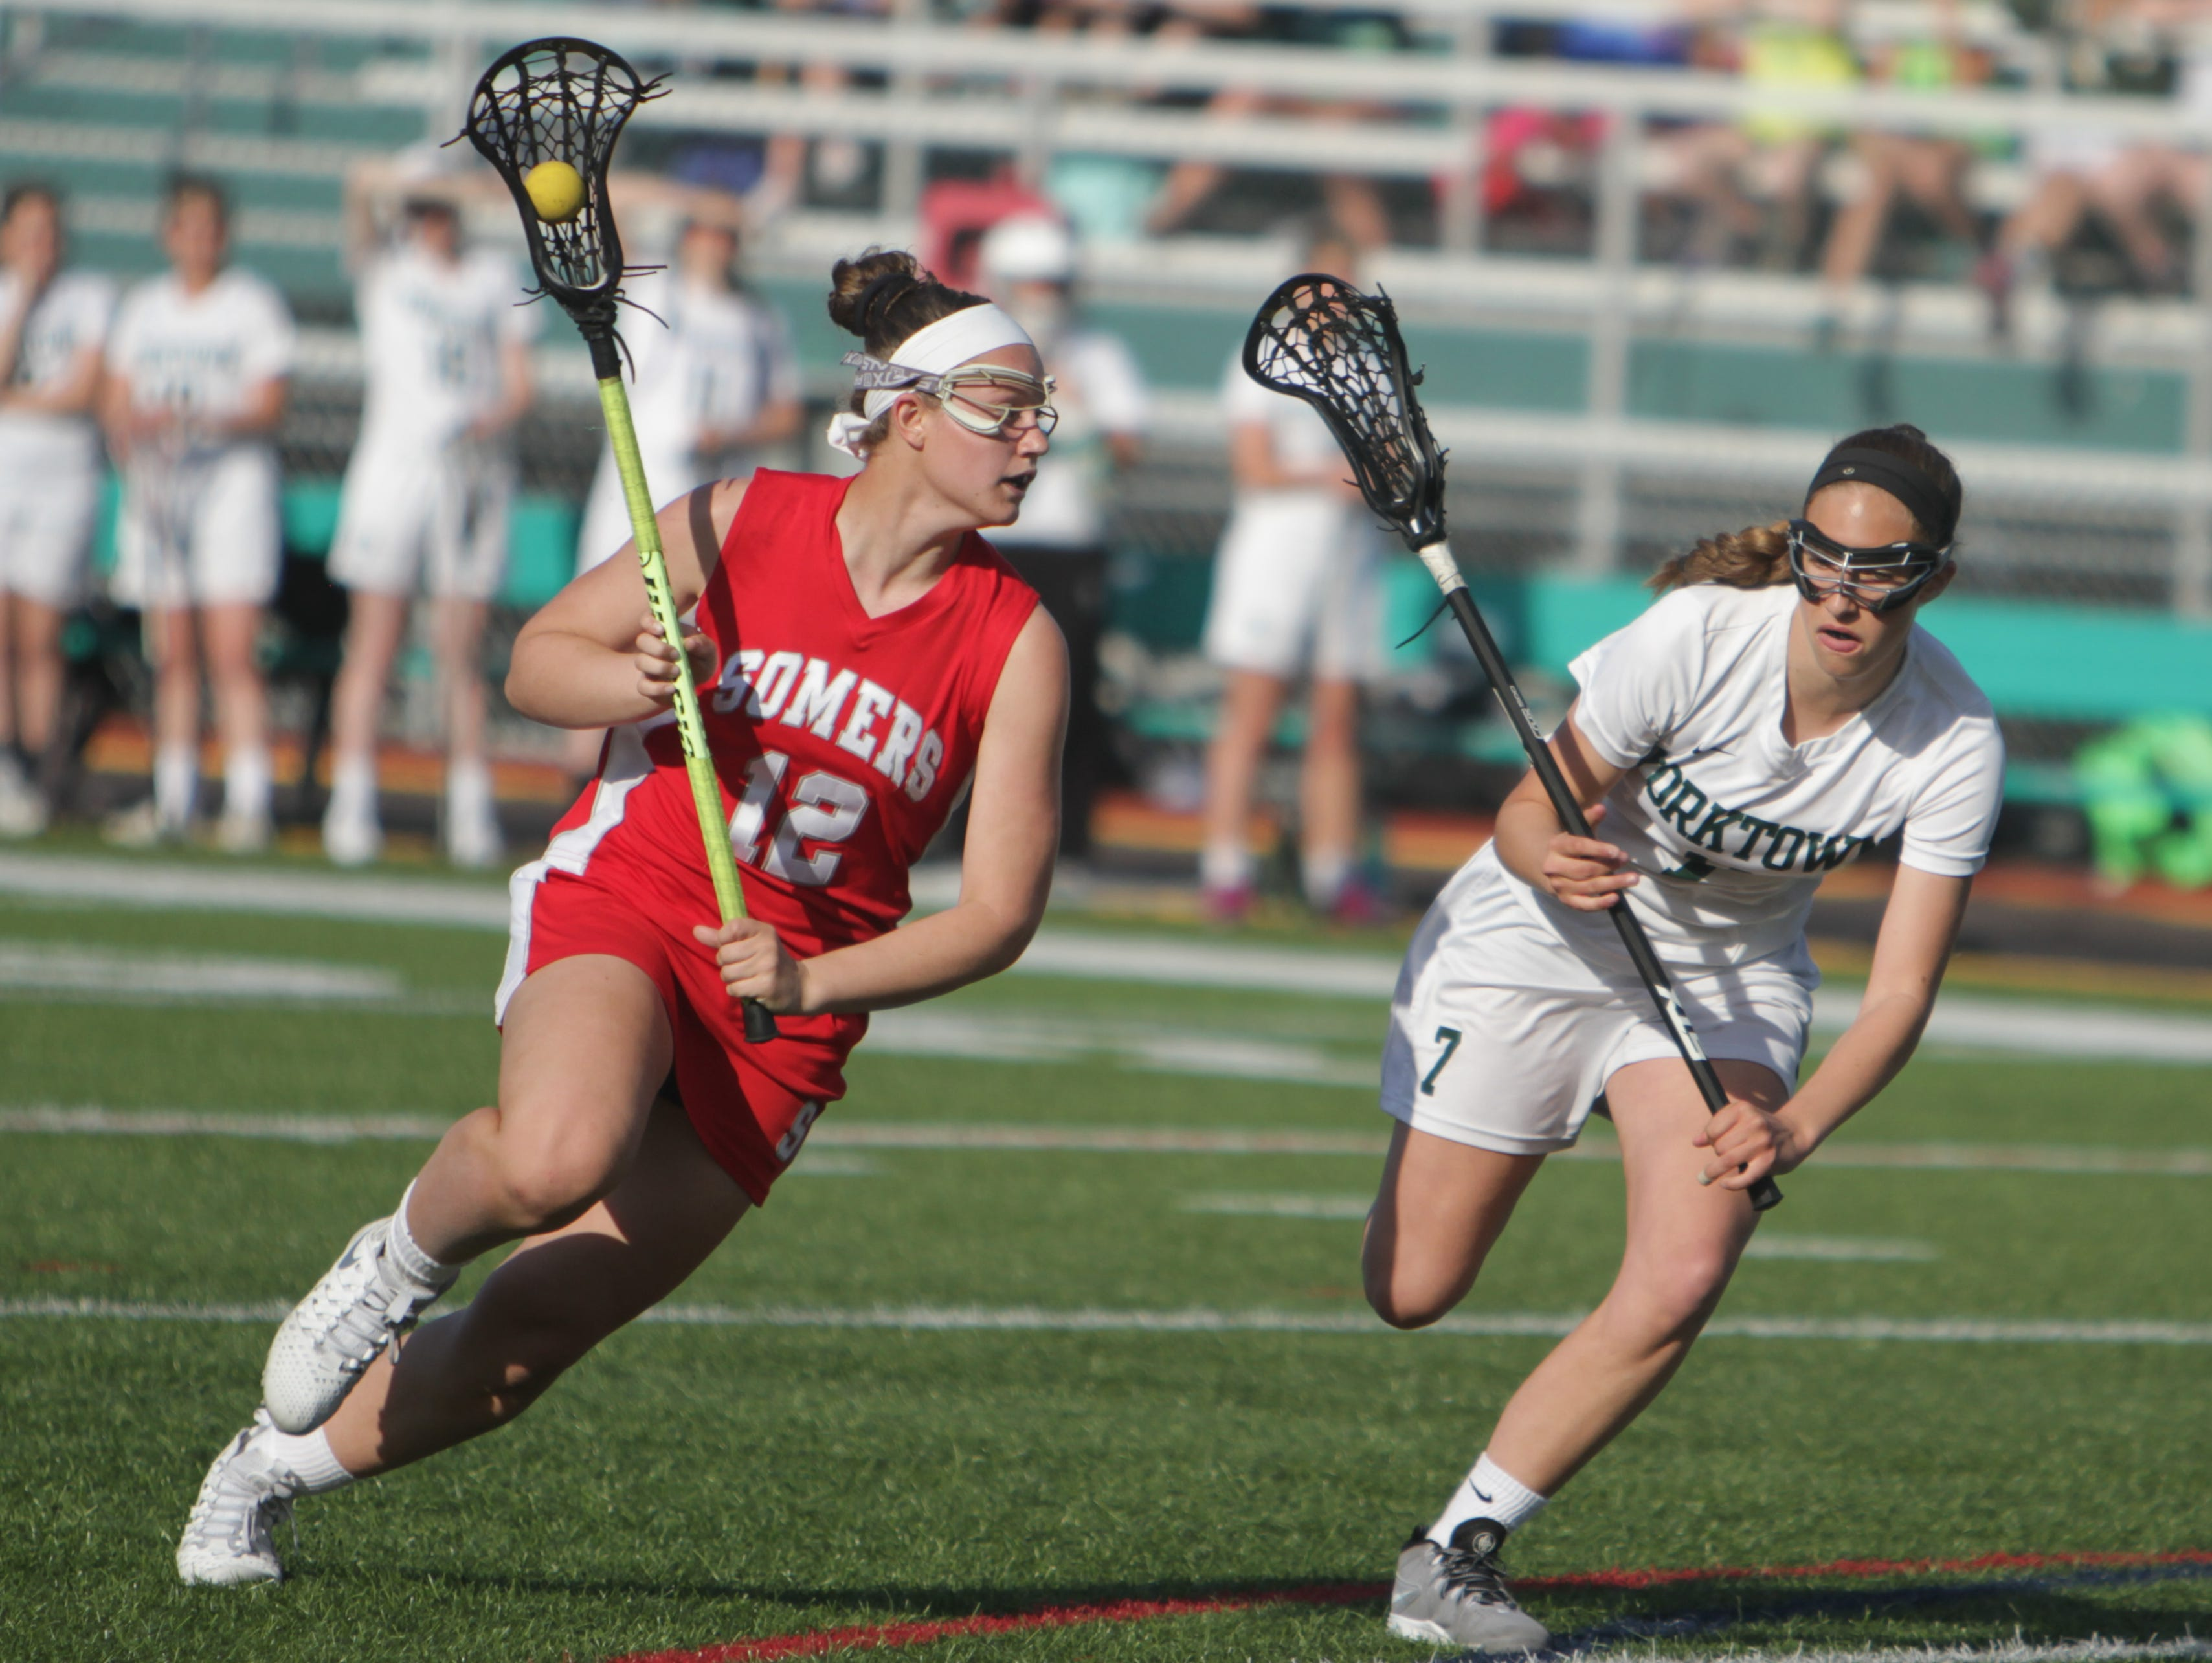 Action during a Section 1 girls lacrosse game between Yorktown and Somers at Yorktown High School on Thursday. Somers won 11-10.